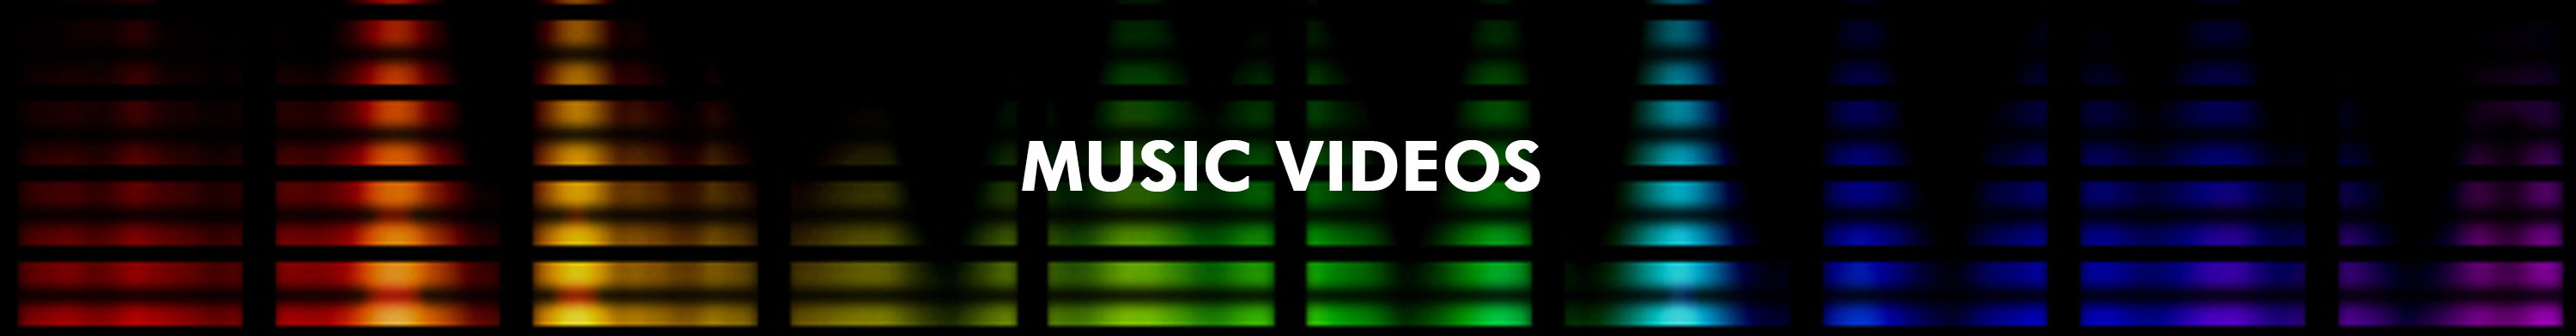 Entertainment Banner Music Videos